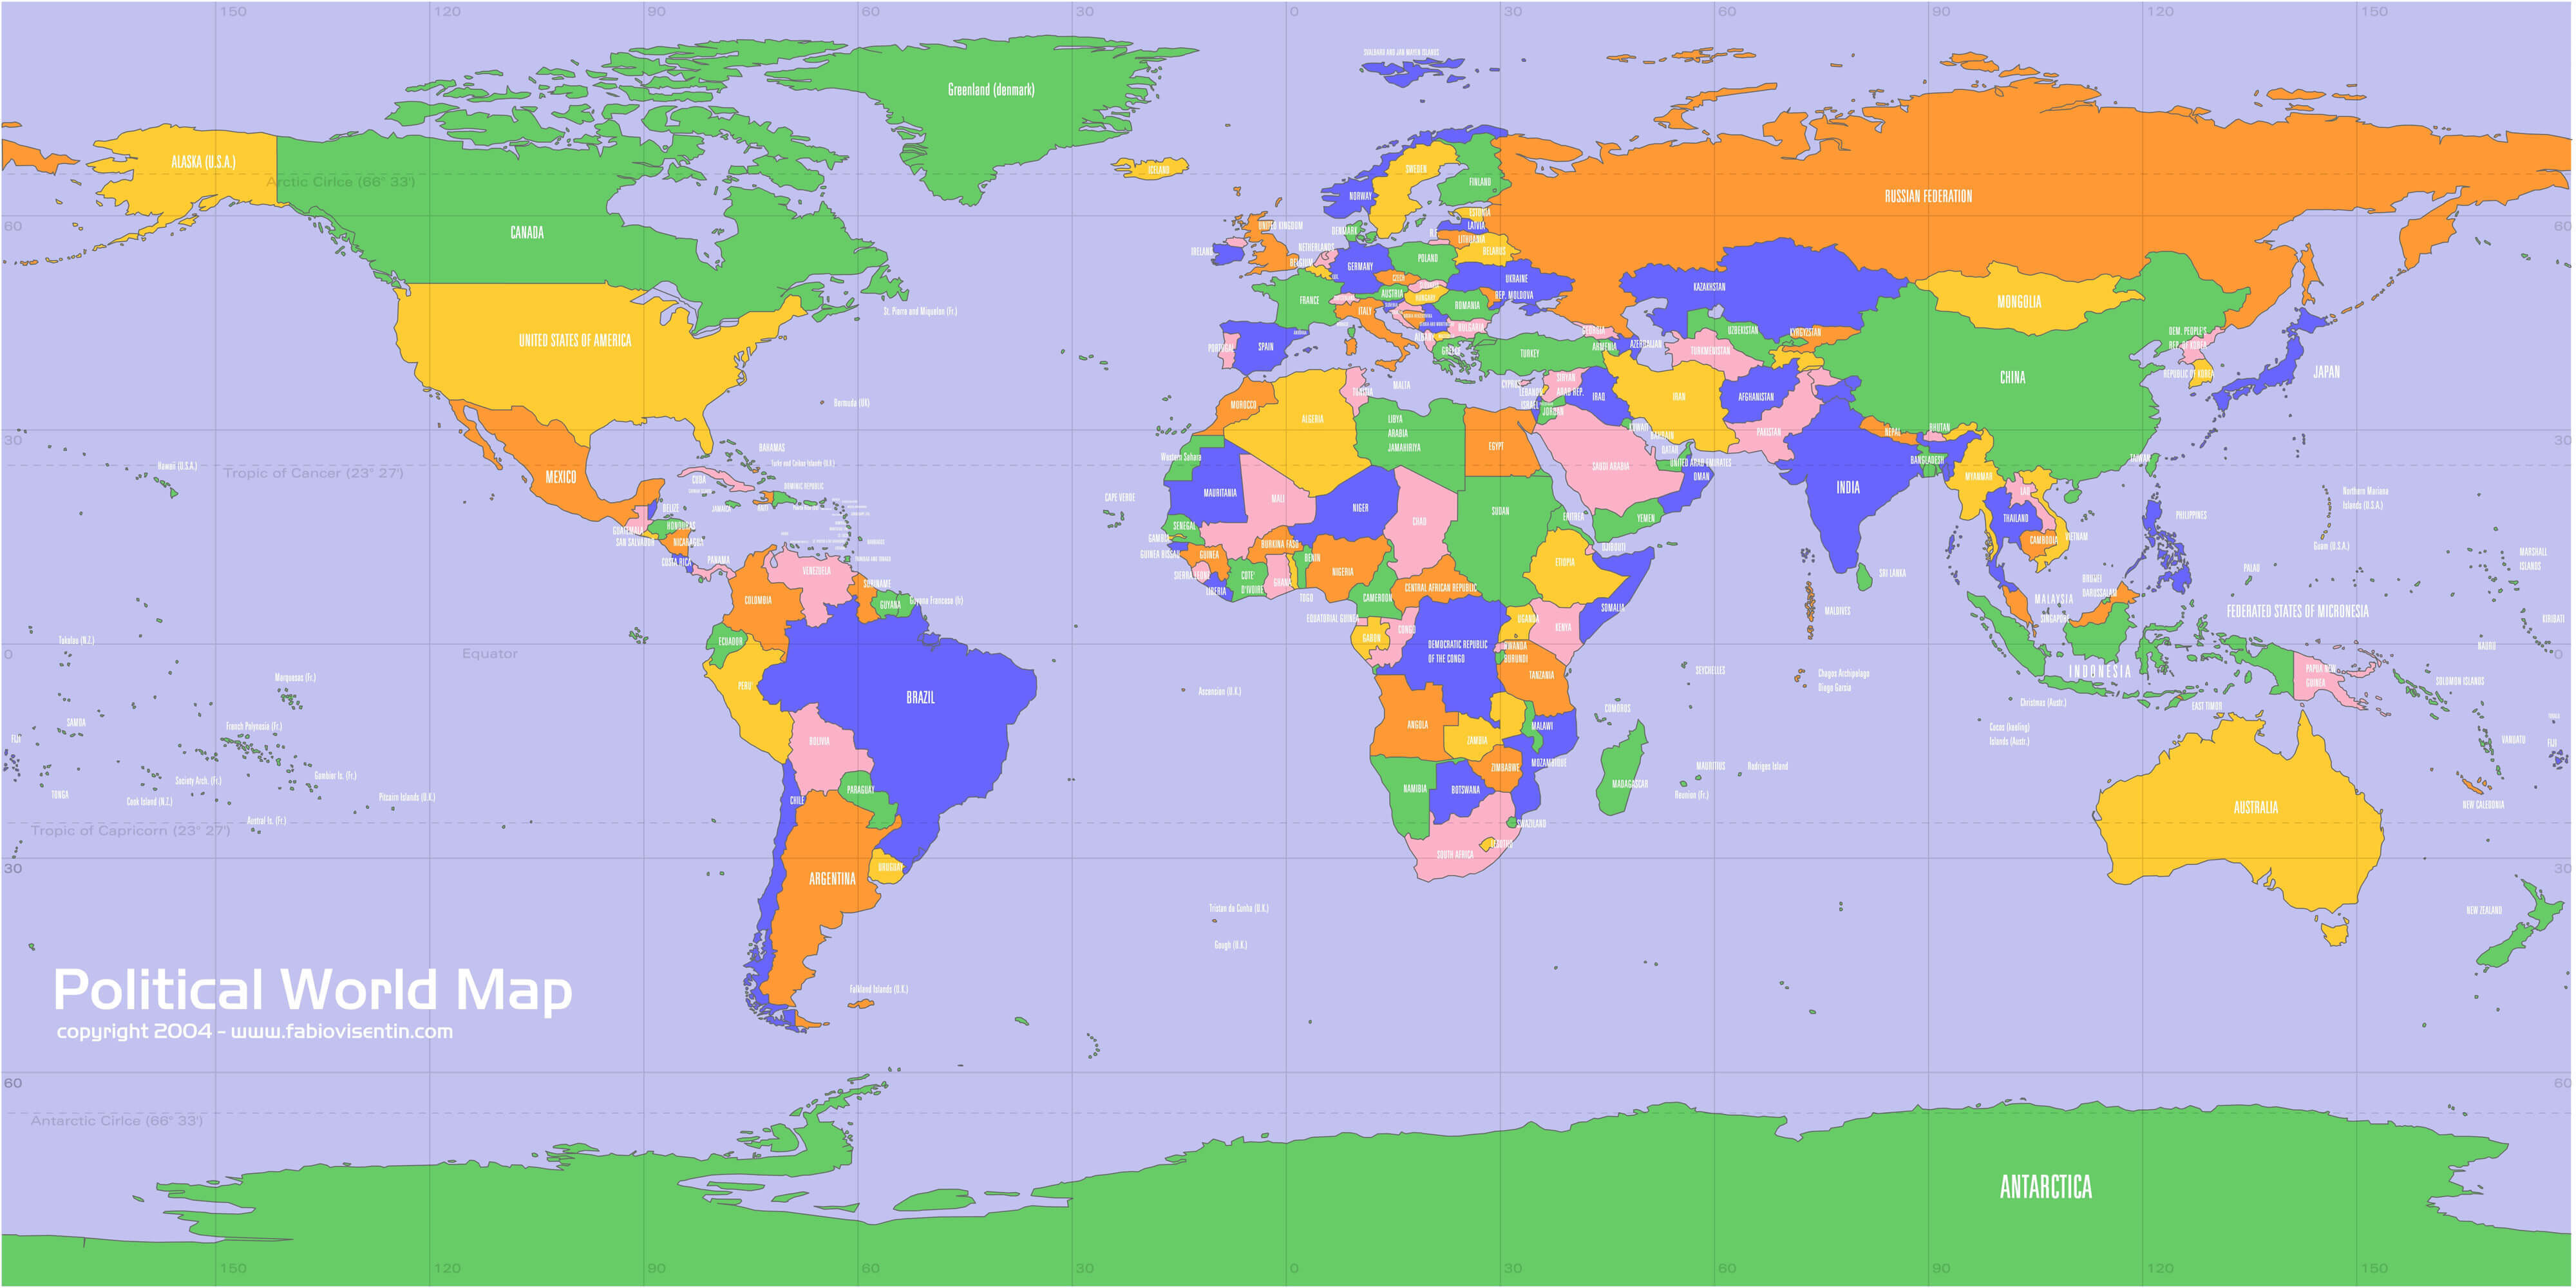 Politic Map of the World